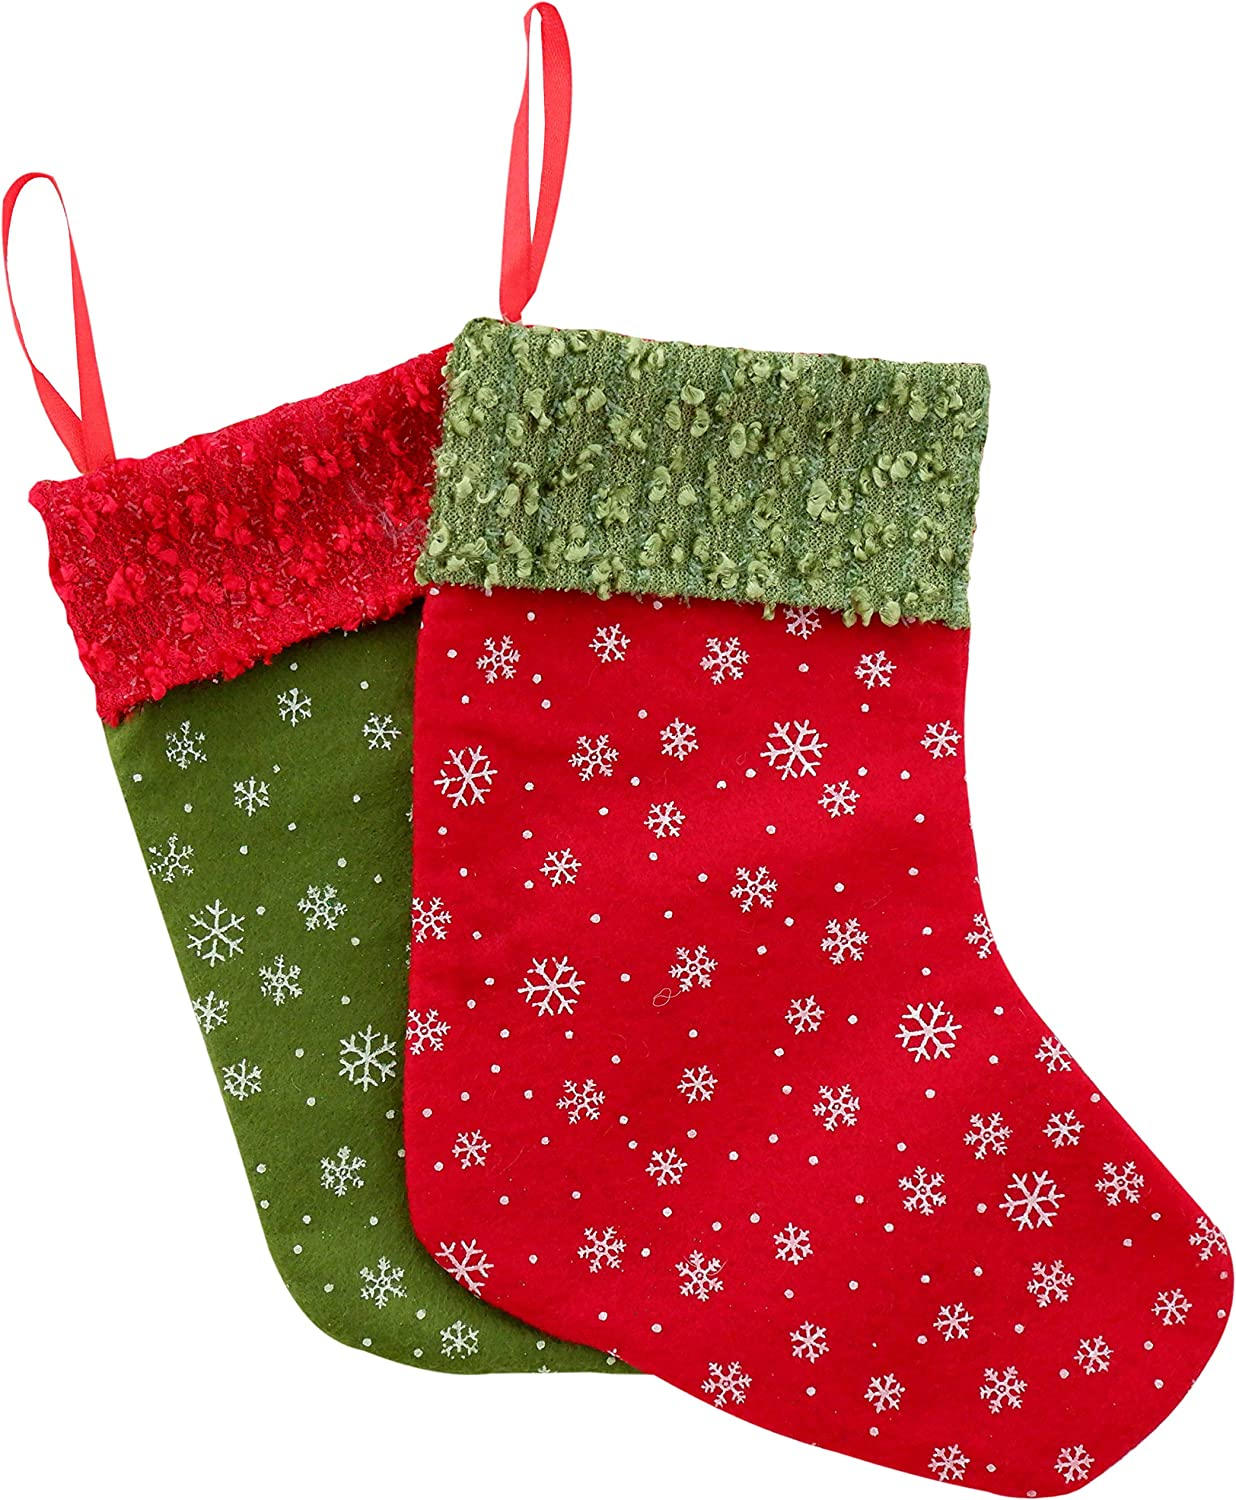 Christmas Stockings - 24 Pack Today's only Bag Seasonal Wrap Introduction Mini Favor 9